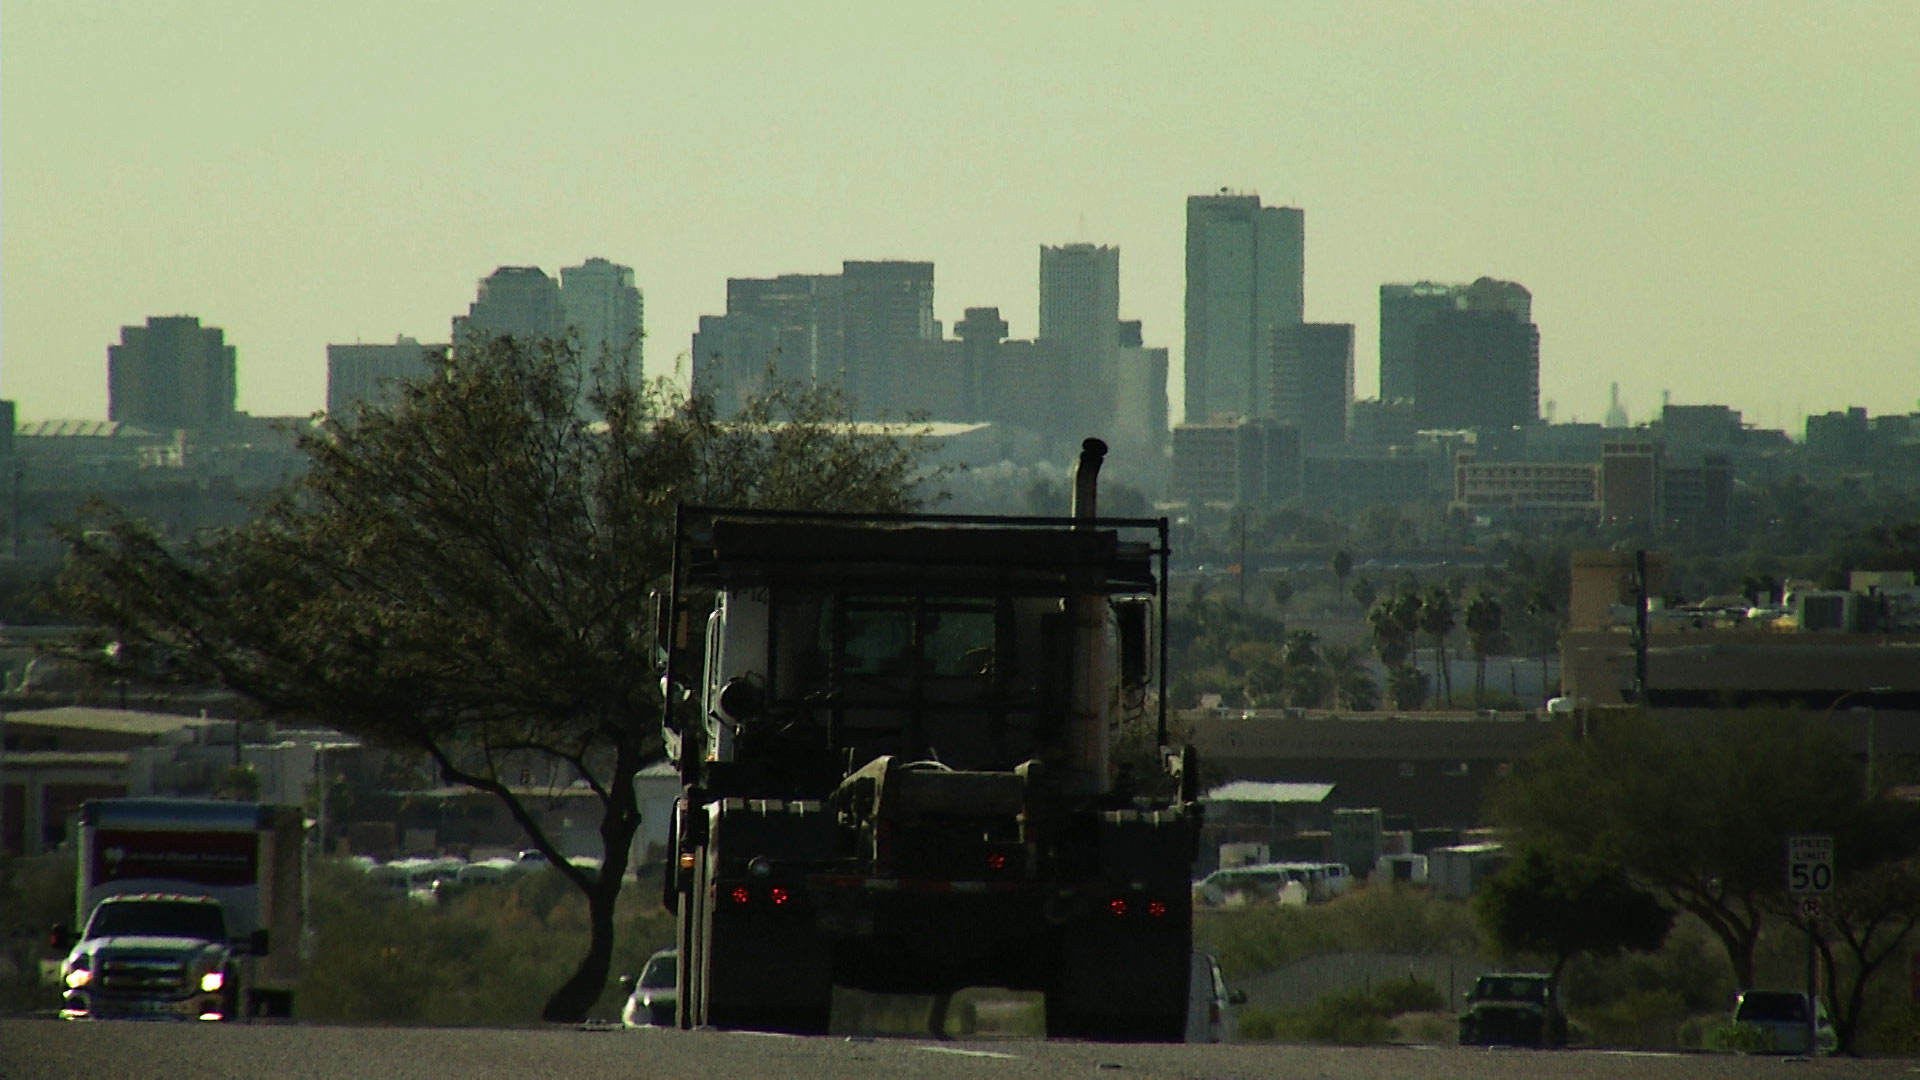 Traffic in Phoenix with the city's downtown skyline in the distance.